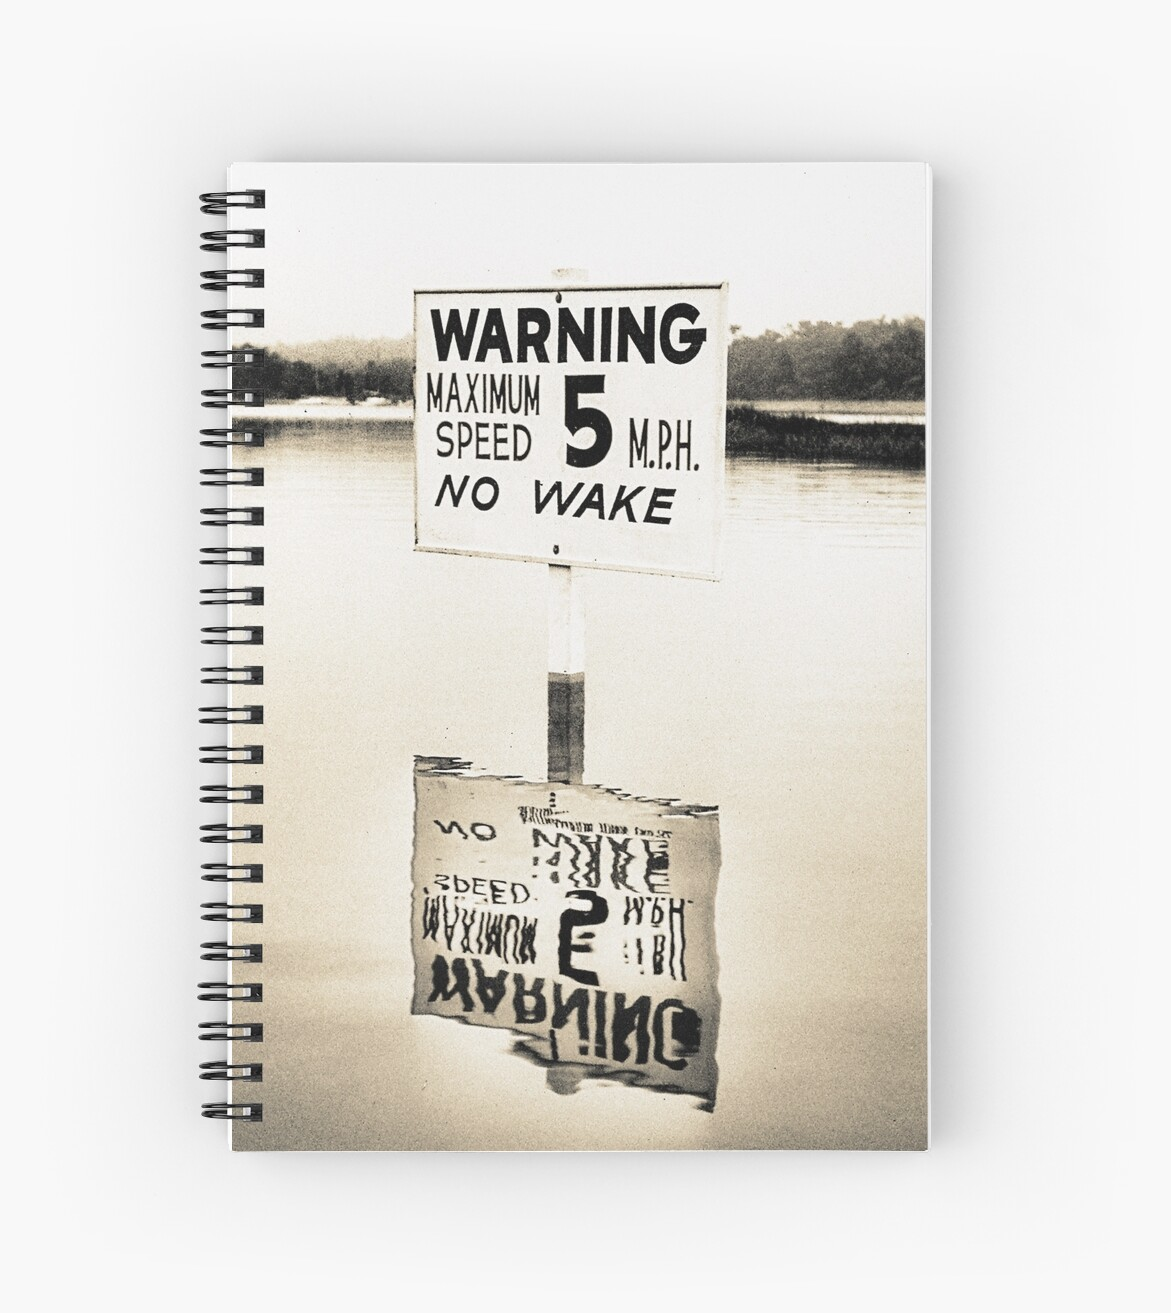 No Wake Sign by Degroom